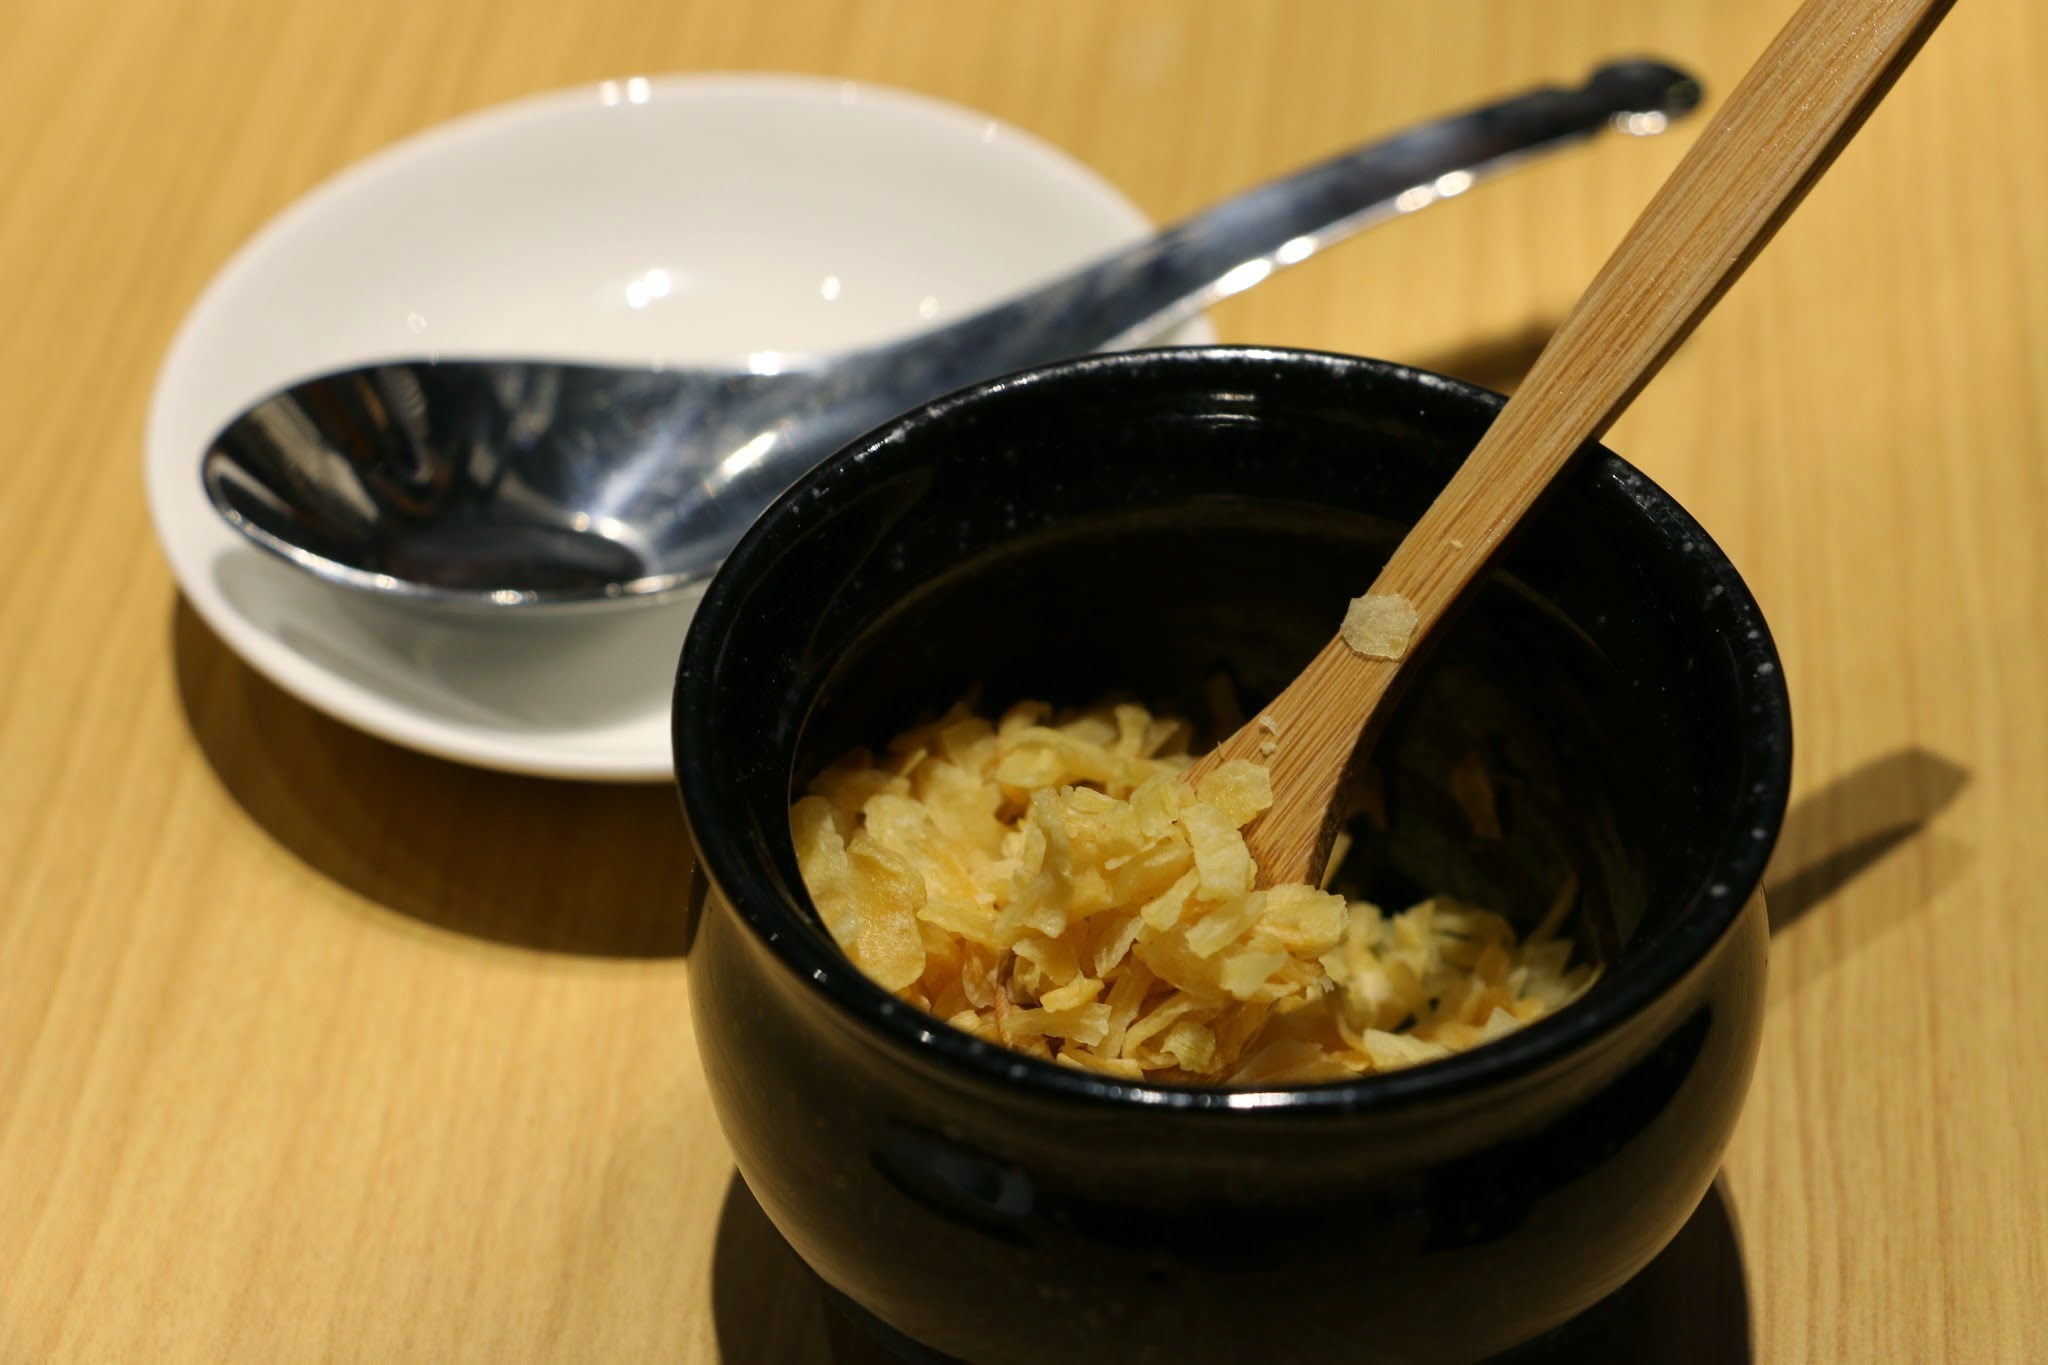 fried onion, onion, condiments, japanese, ramen, noodle Tetsu, TETSU沾麵哲